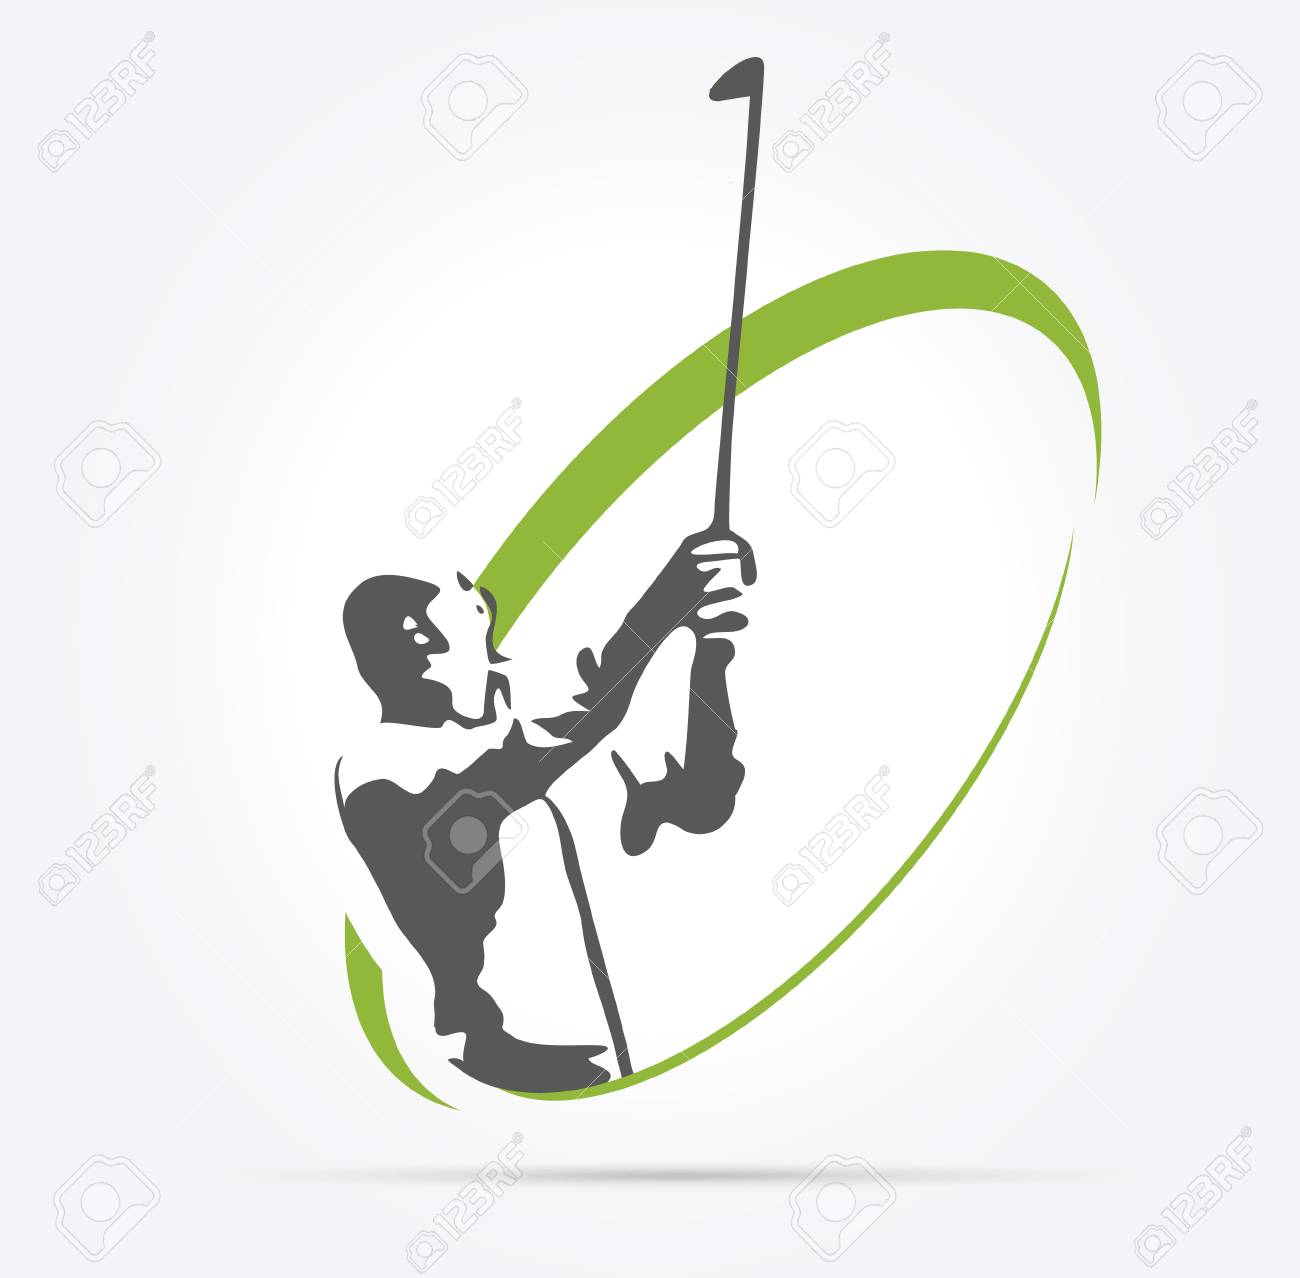 Woman Golf Silhouette Illustration On White Background Royalty Free